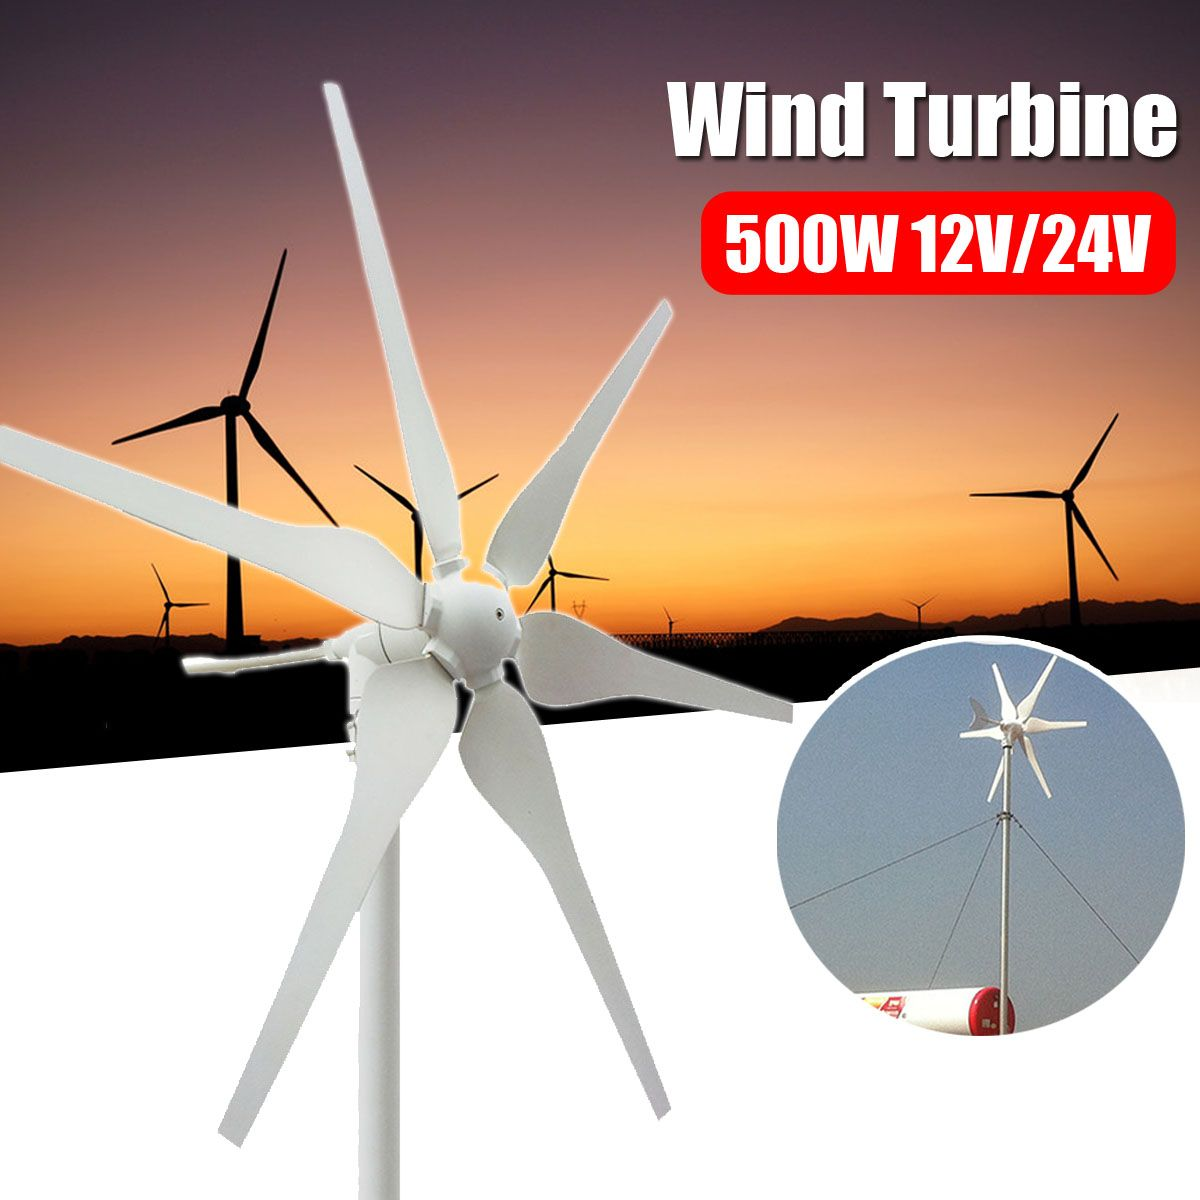 500W 12V/24V Environmental 6 Blades Mini Wind Turbines Energy Generator Miniature Wind Turbines Residential Home With Controller